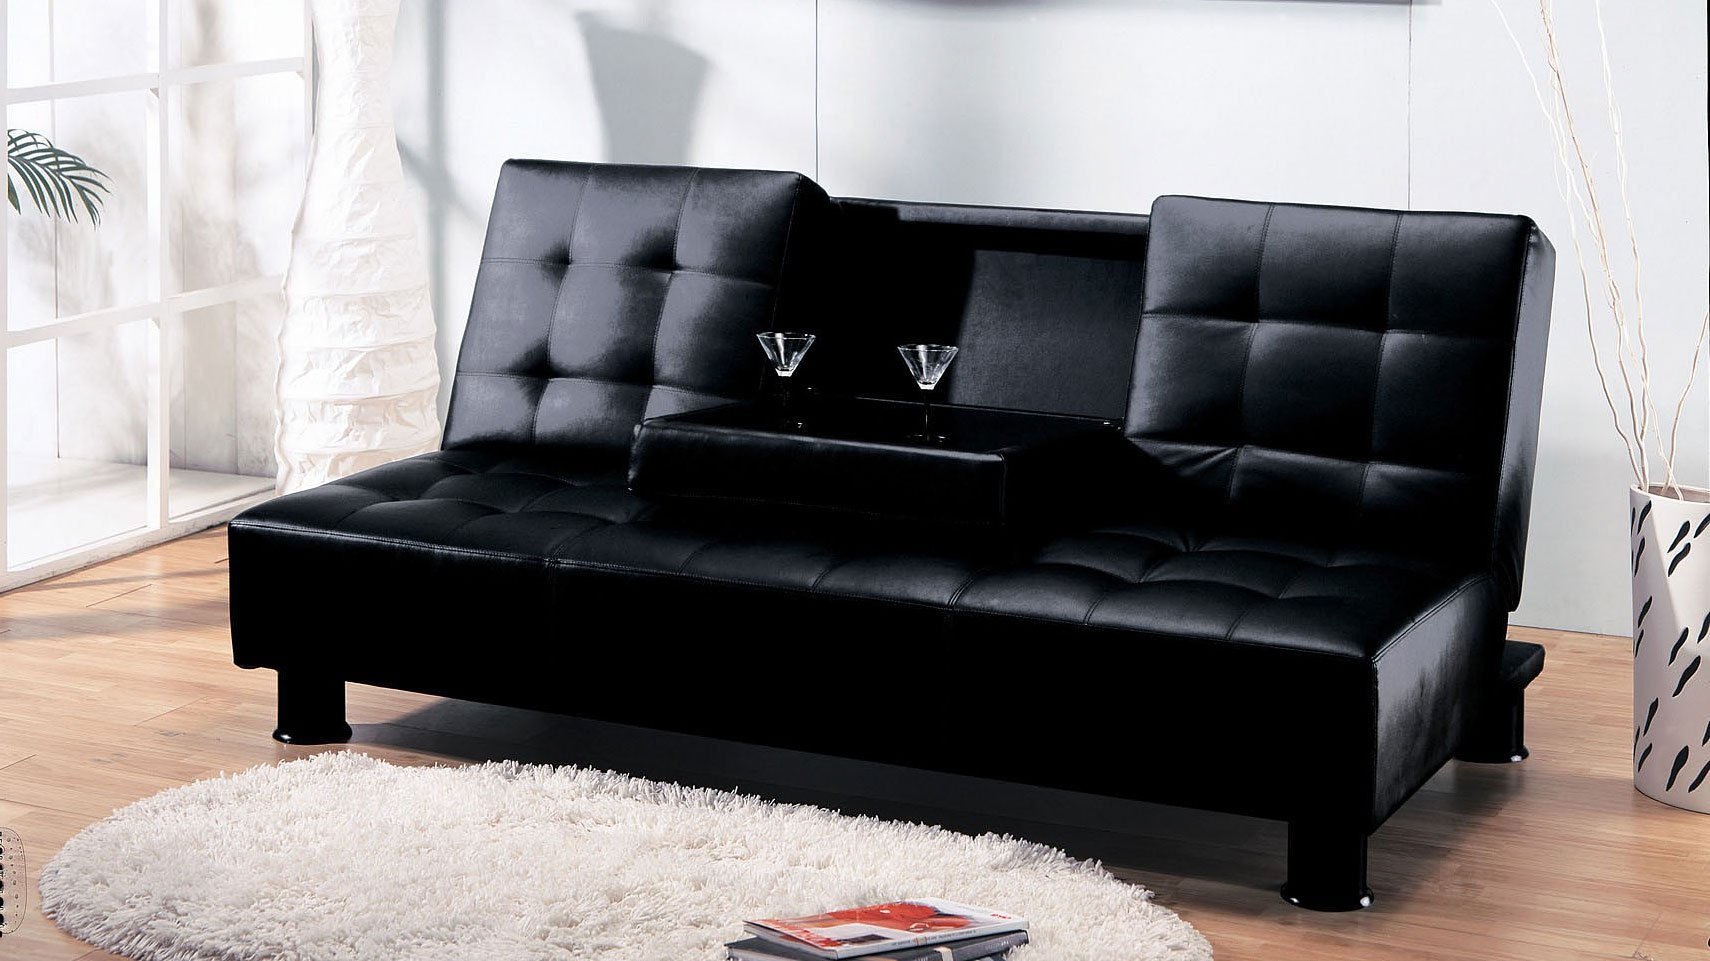 cup holder sofa bed glider ron arad monticello w futons living room